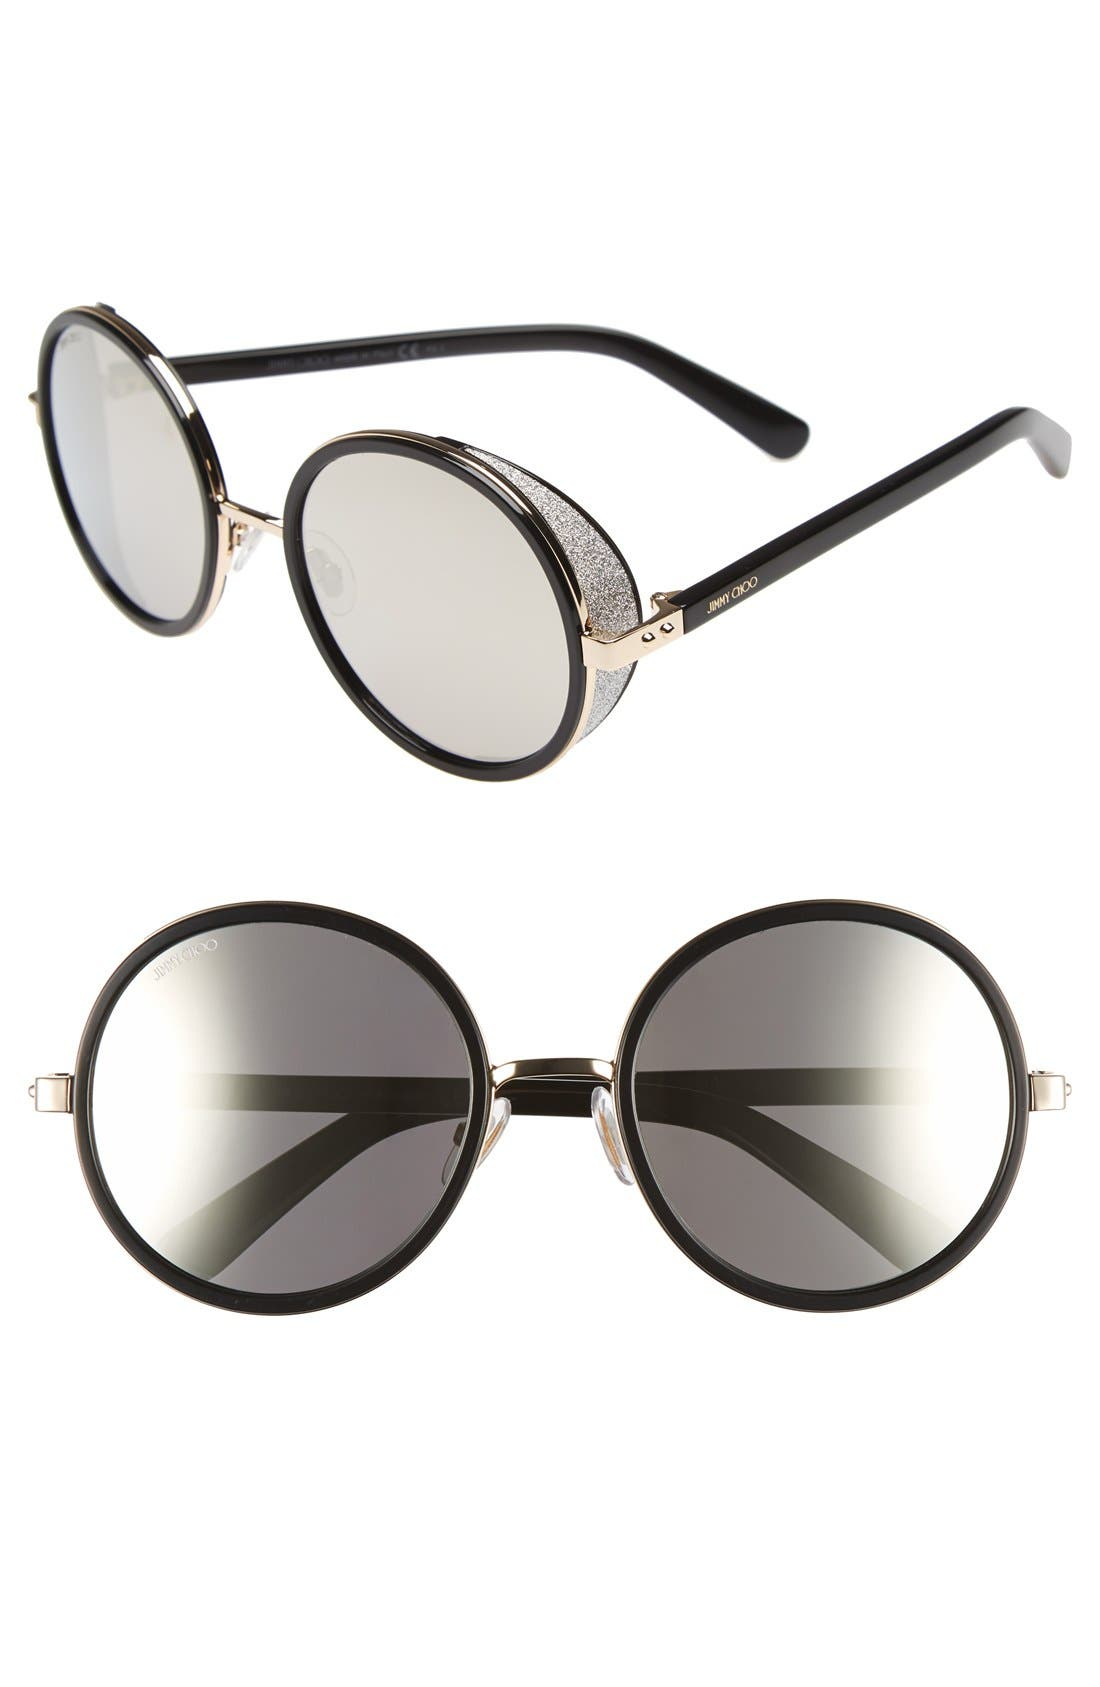 Alternate Image 1 Selected - Jimmy Choo 'Andies' 54mm Round Sunglasses